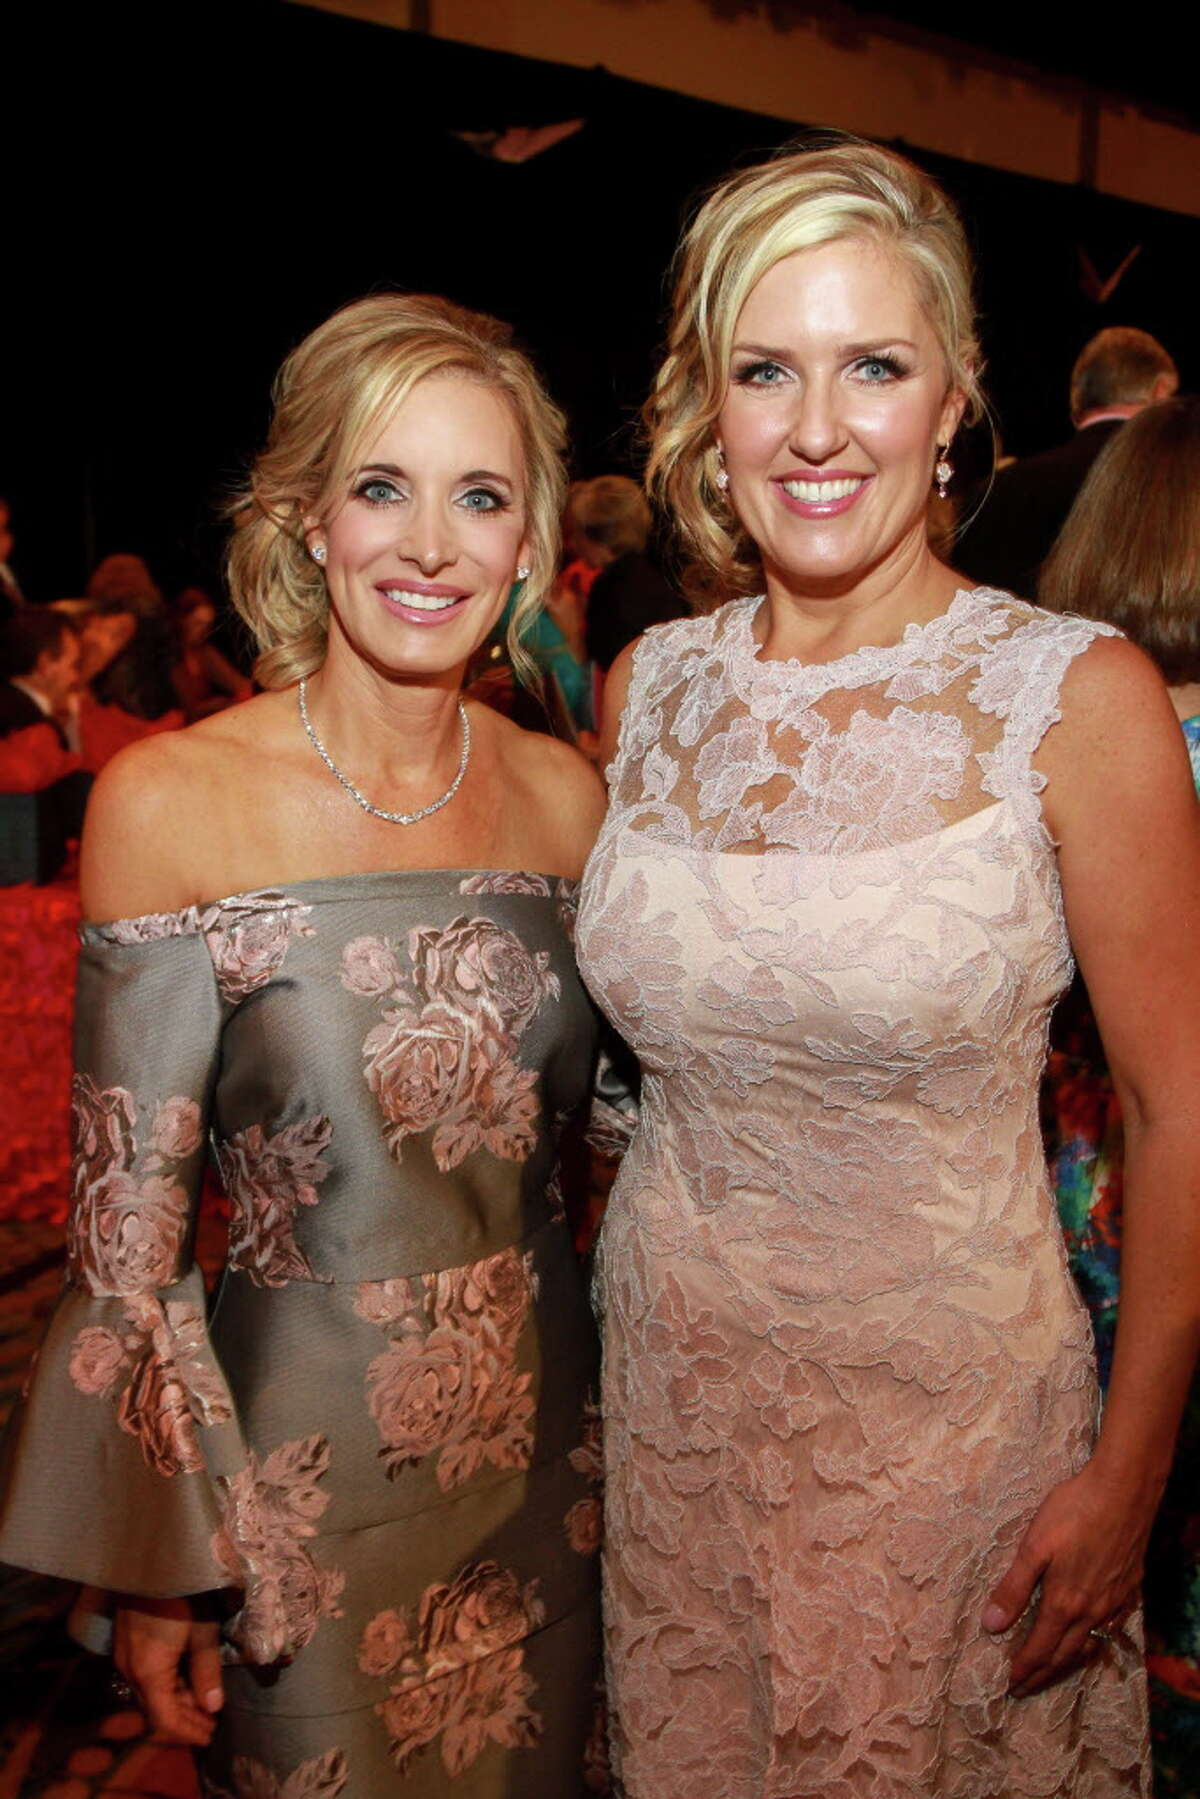 """Co-chairs Cheryl Brady, left, and Tiffany McClung at the Memorial Hermann """"In the Pink of Health"""" luncheon. (For the Chronicle/Gary Fountain, September 29, 2017)"""